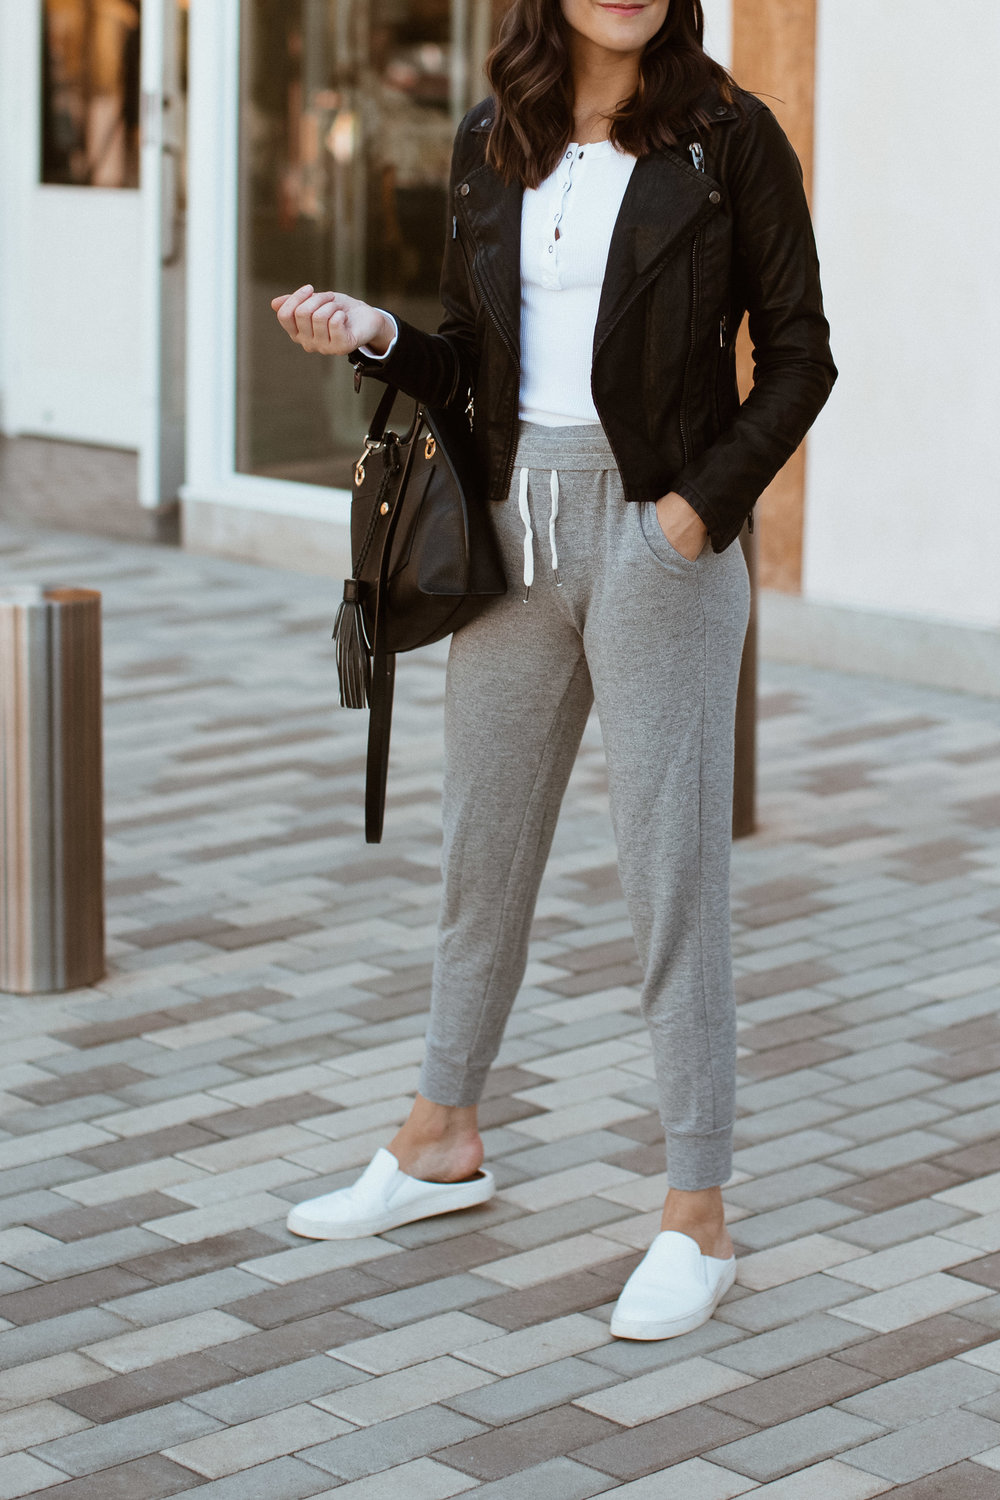 jogger pants outfit